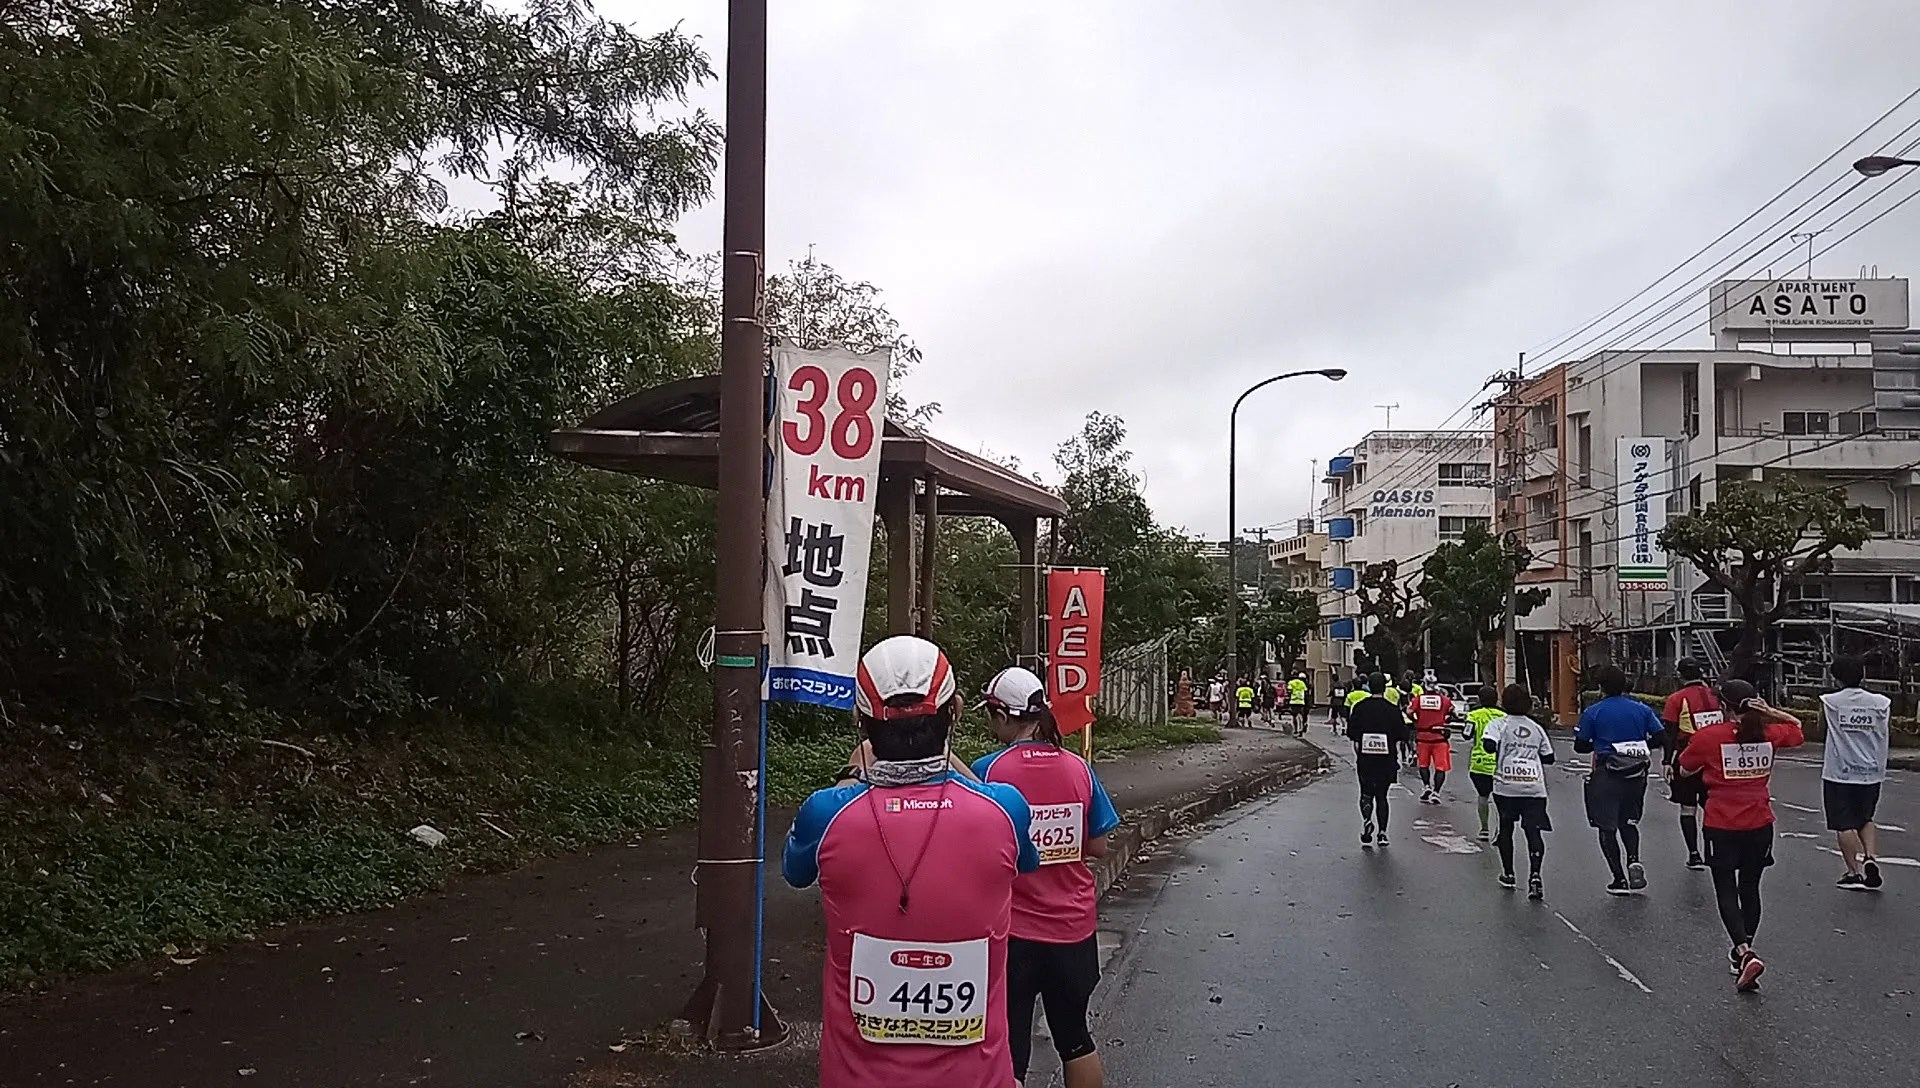 have only 5km left